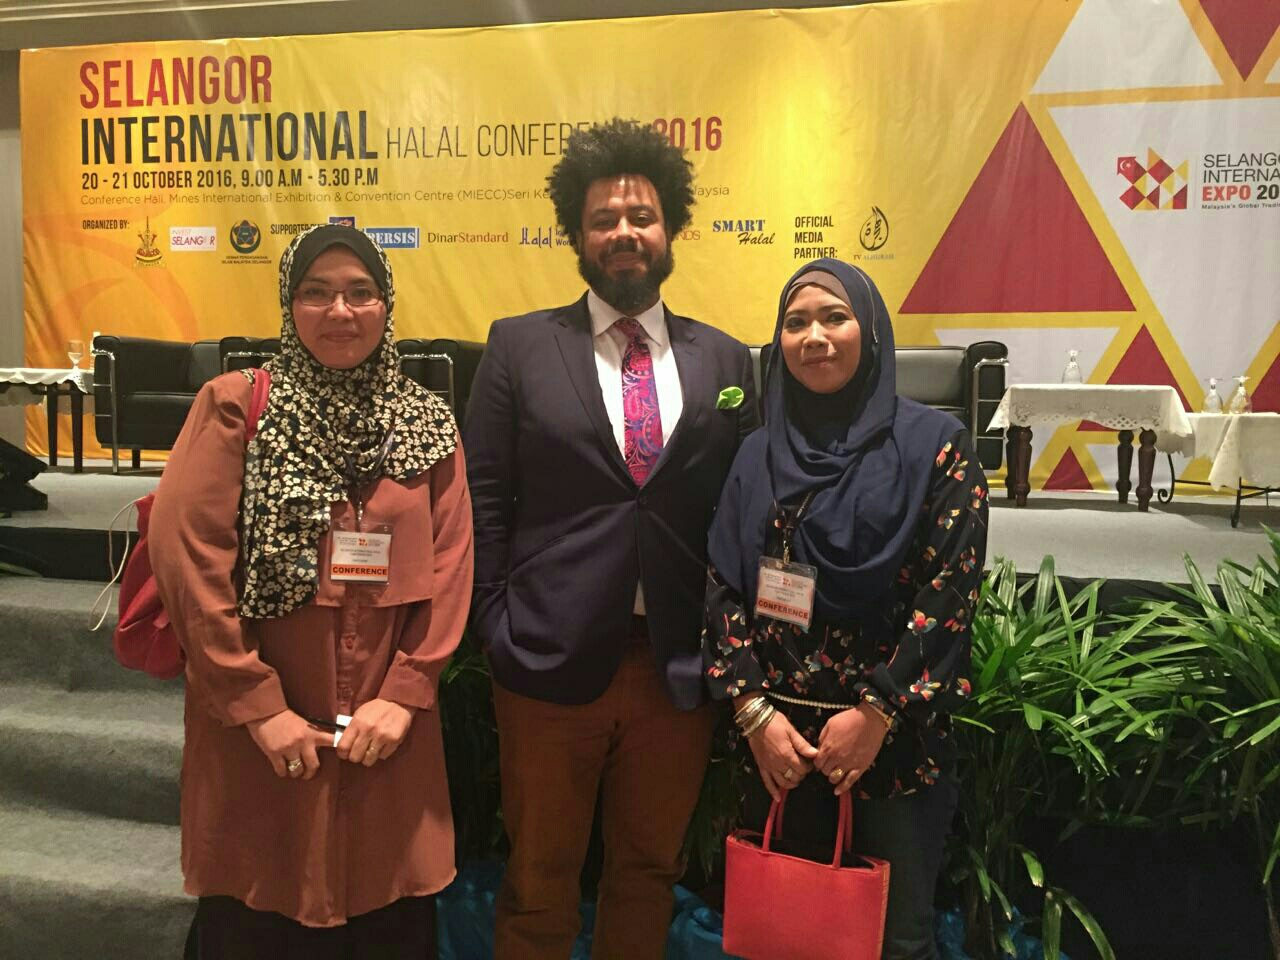 sleangor-international-halal-conference-2016-6